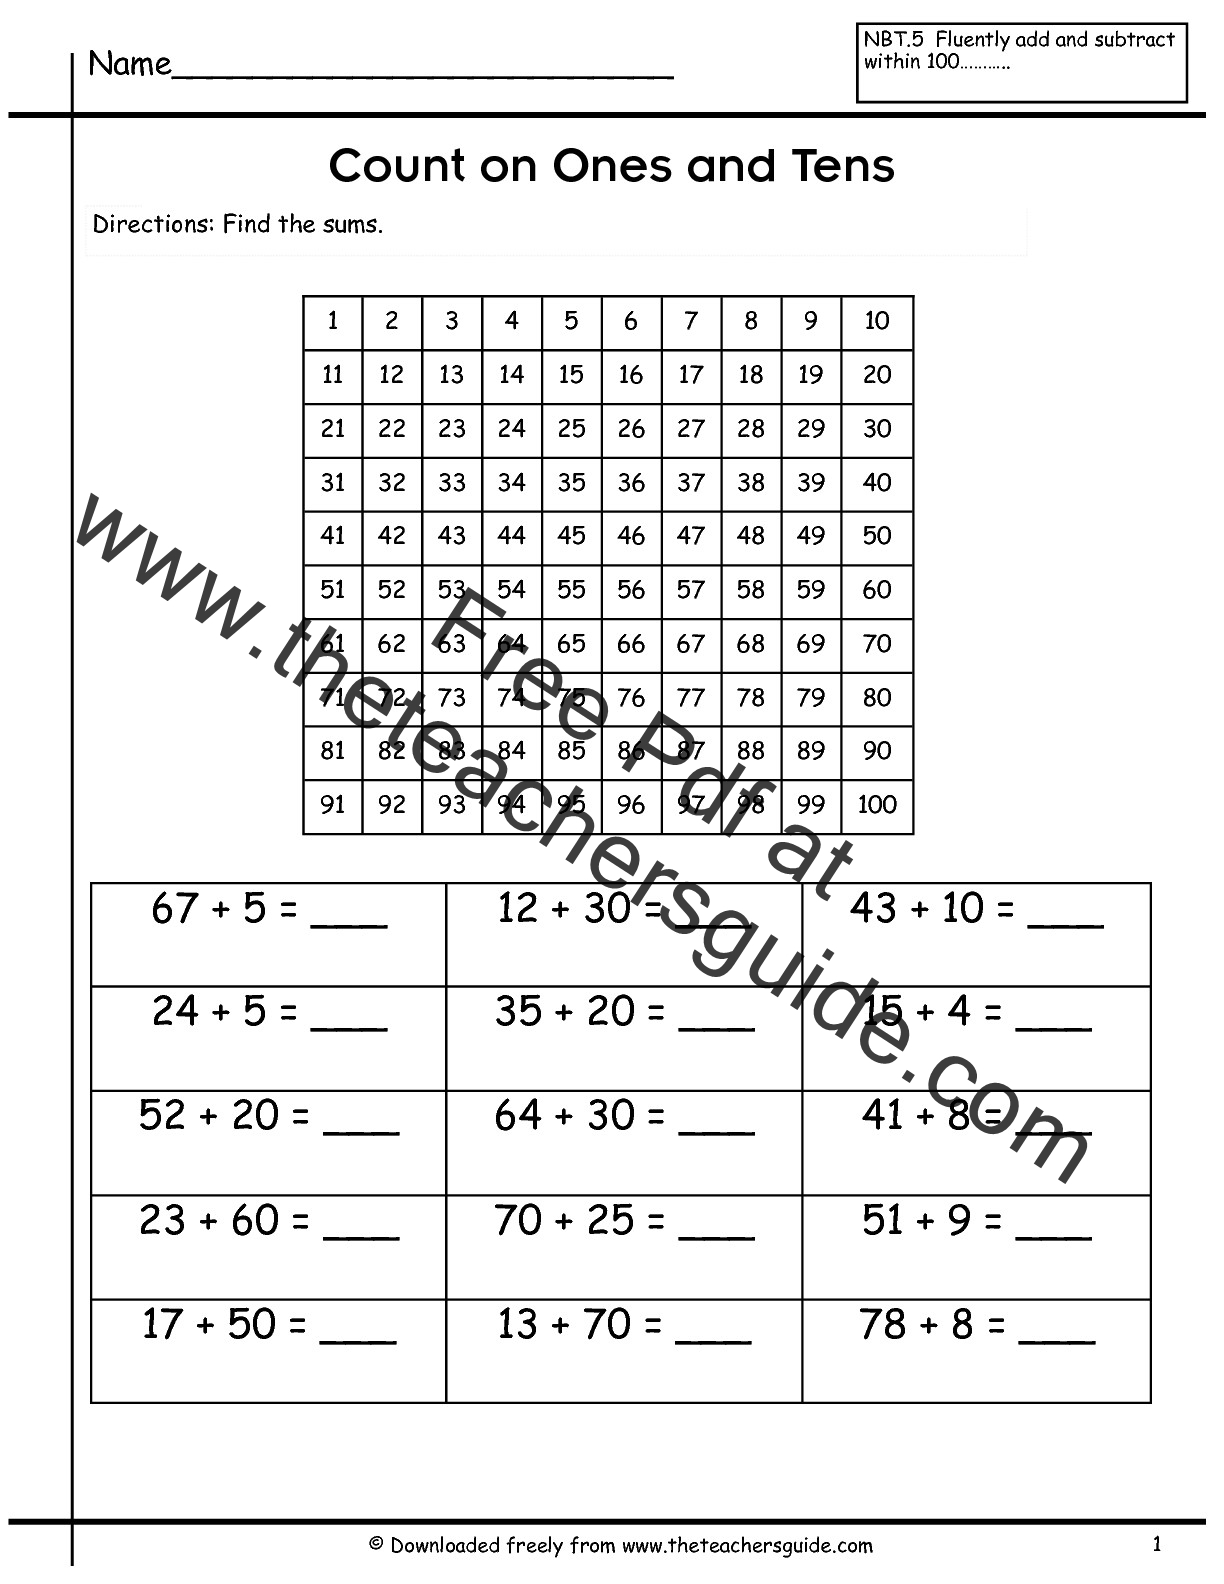 Two Digit Addition Worksheets From The Teachers Guide